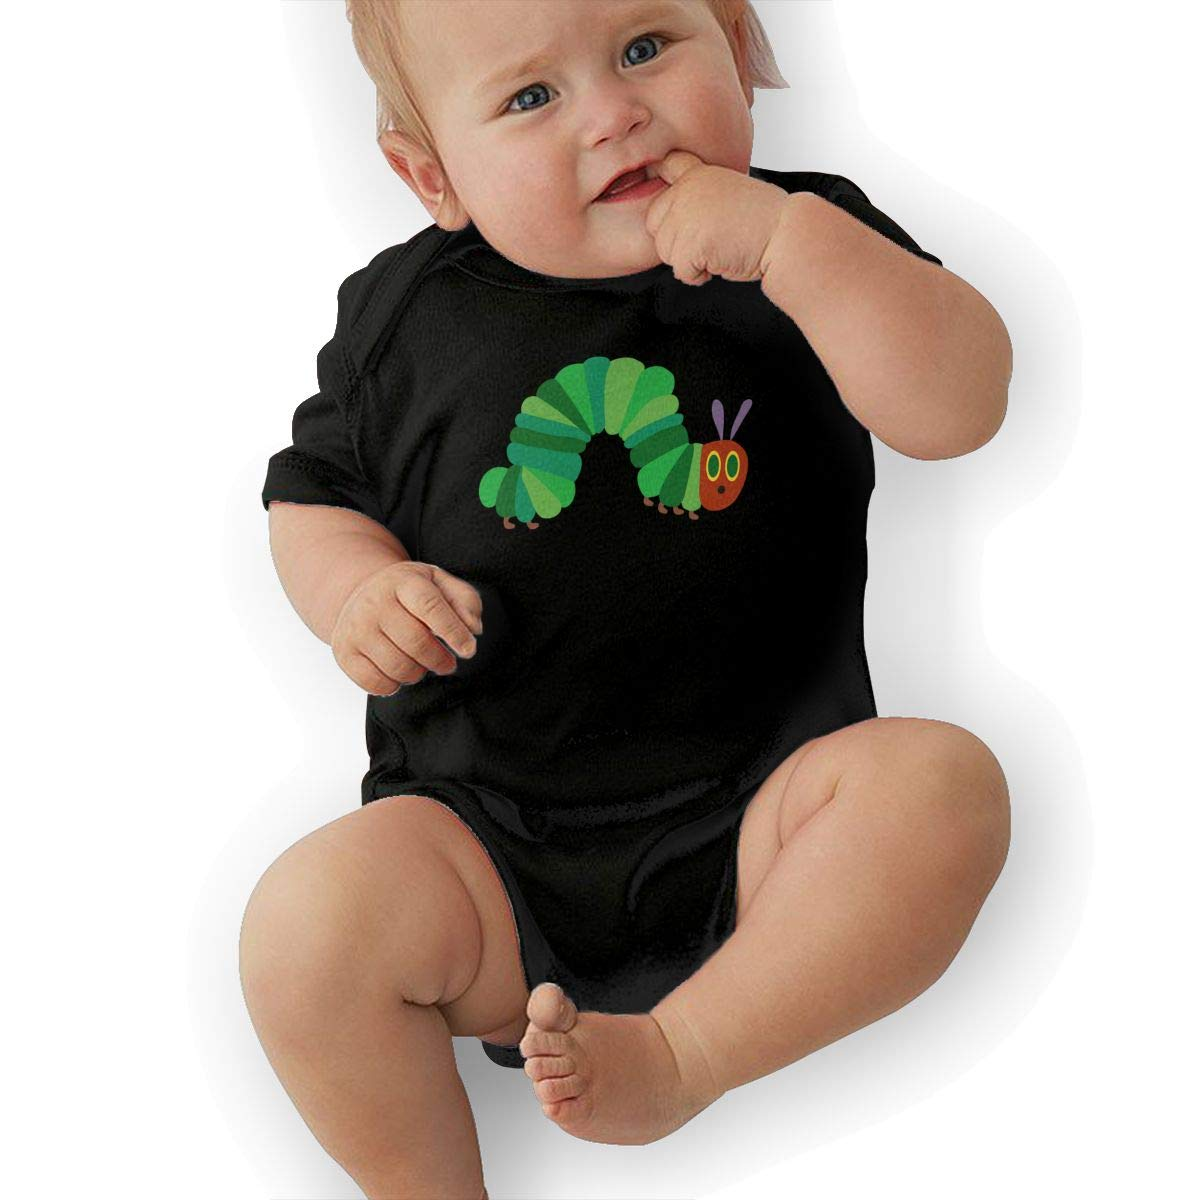 The Very Hungry Caterpillar Casual Newborn Baby Short Sleeve Bodysuit Romper Infant Summer Clothing